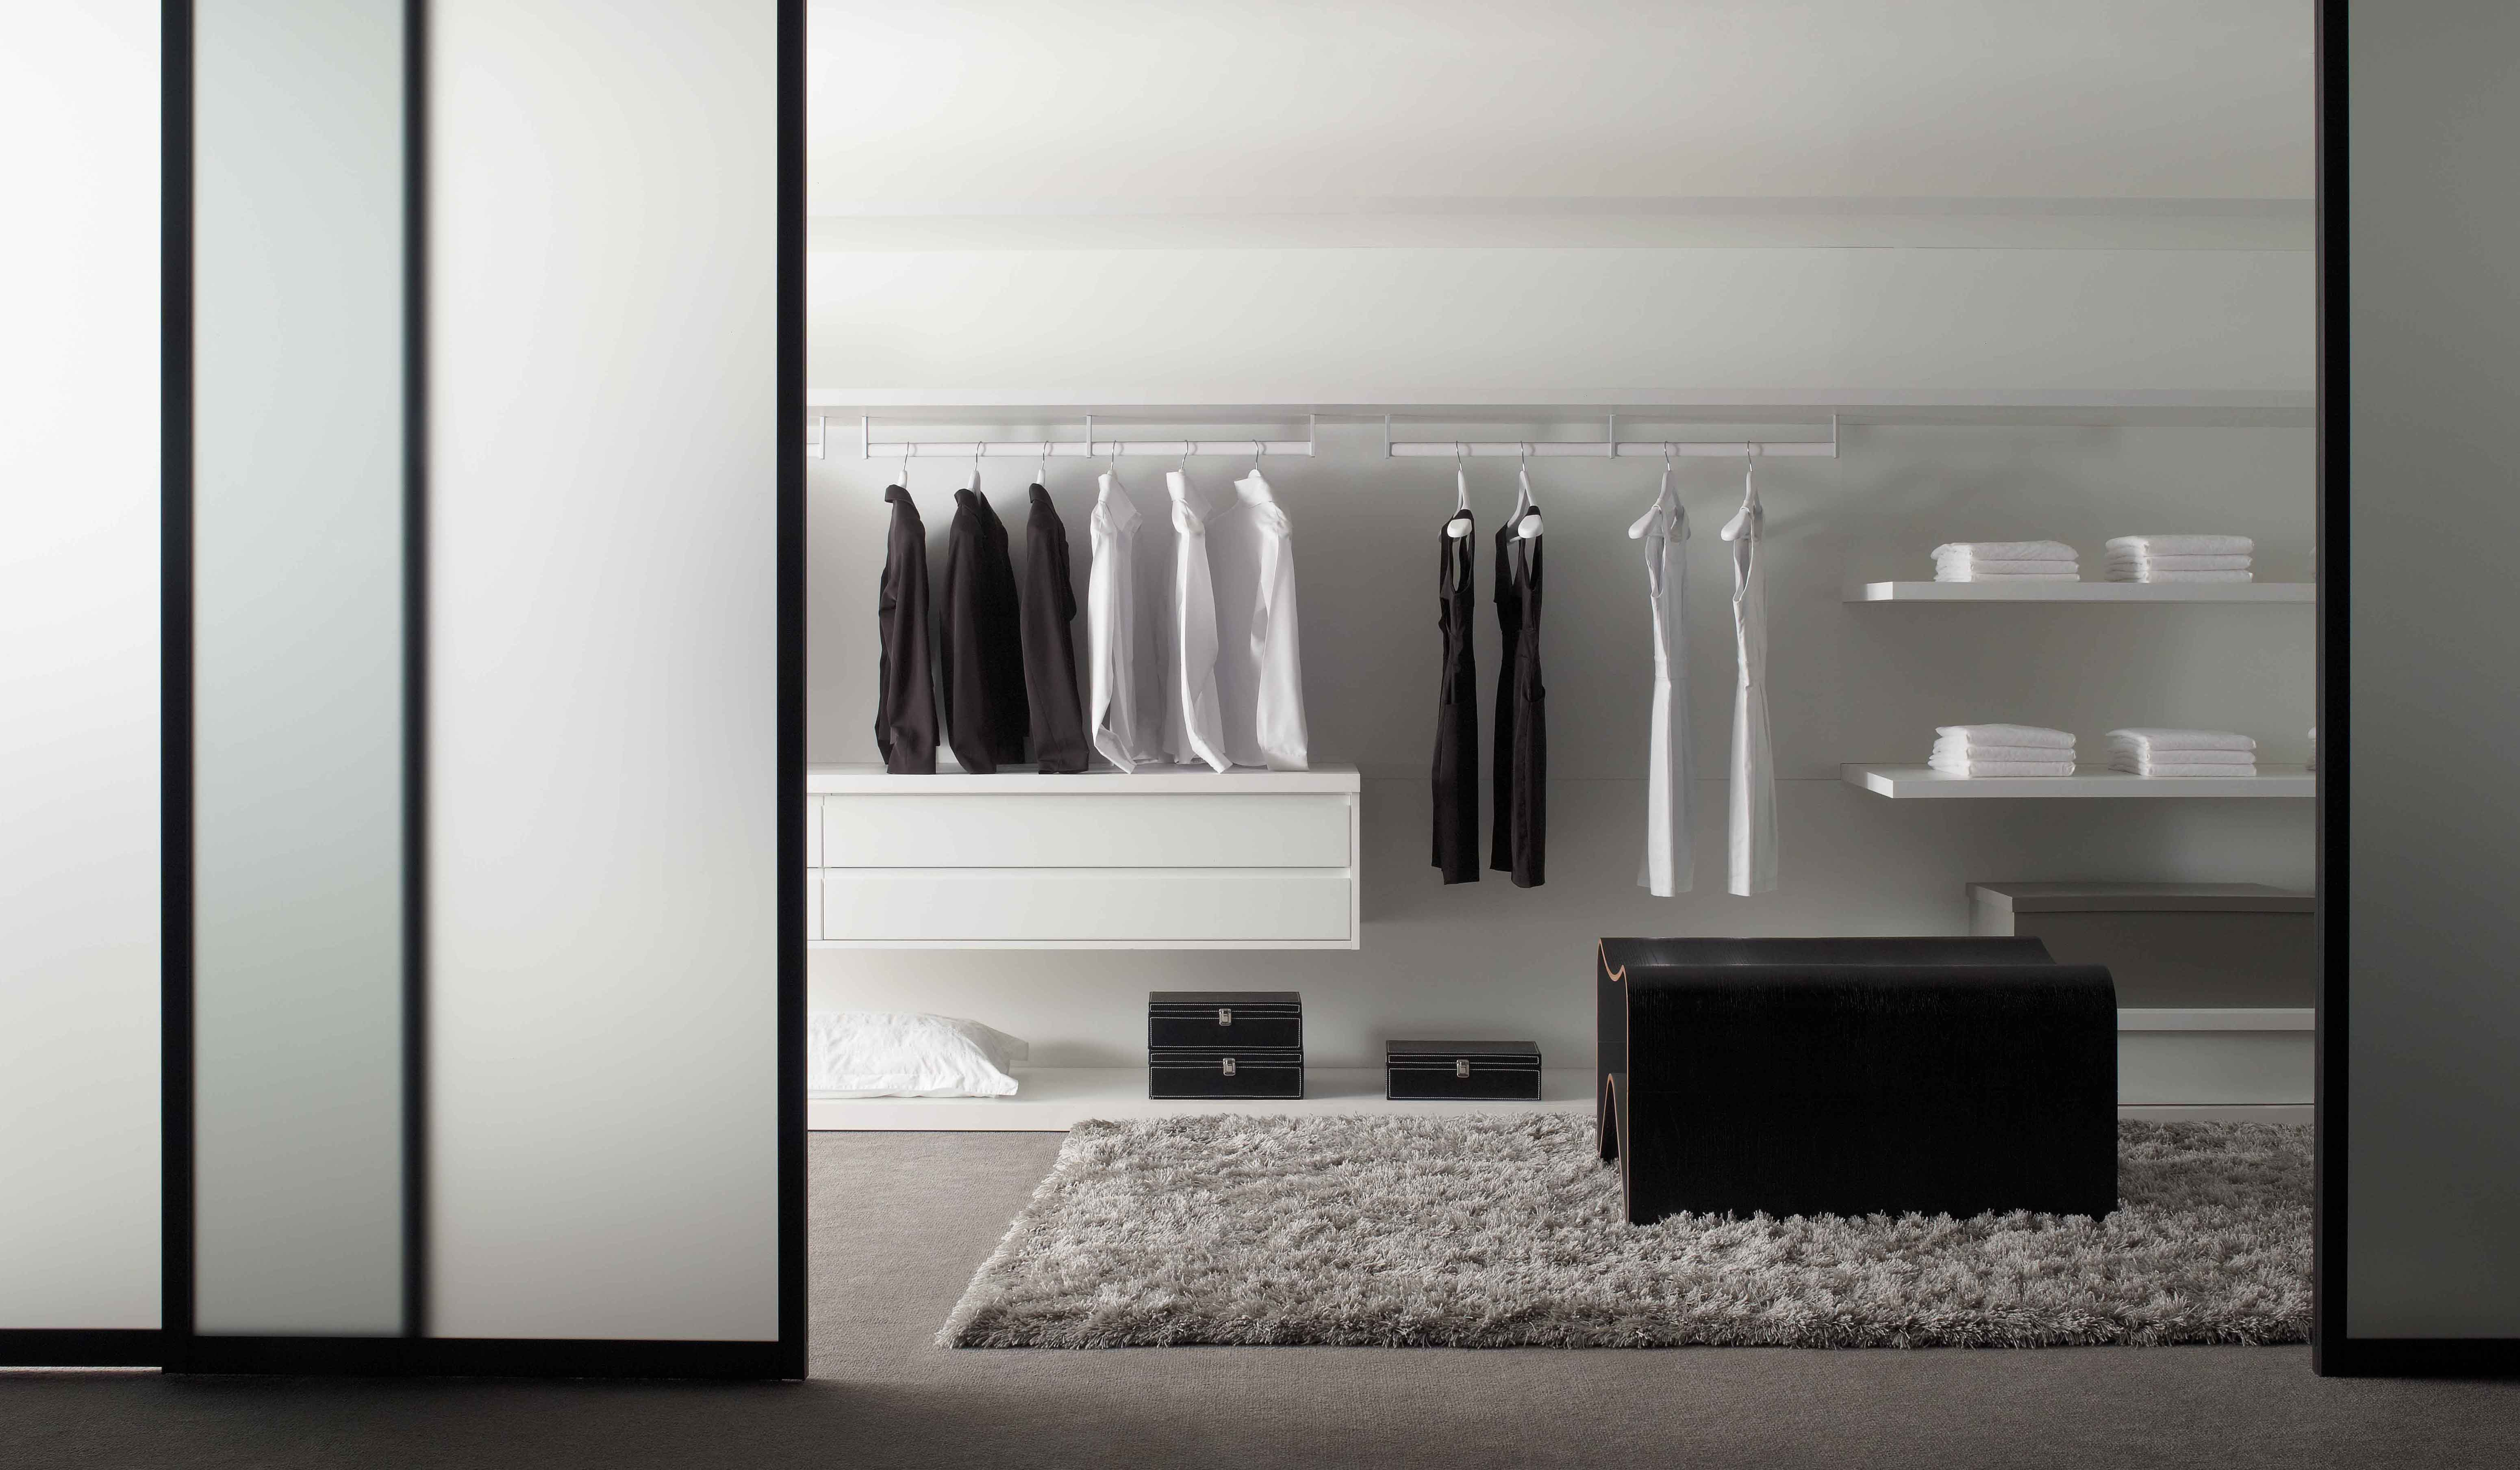 Combining Aesthetics With Efficiency In A Union Of Form And Function. Dell Anno Closets Are Built To Organize Your Sense Of Style